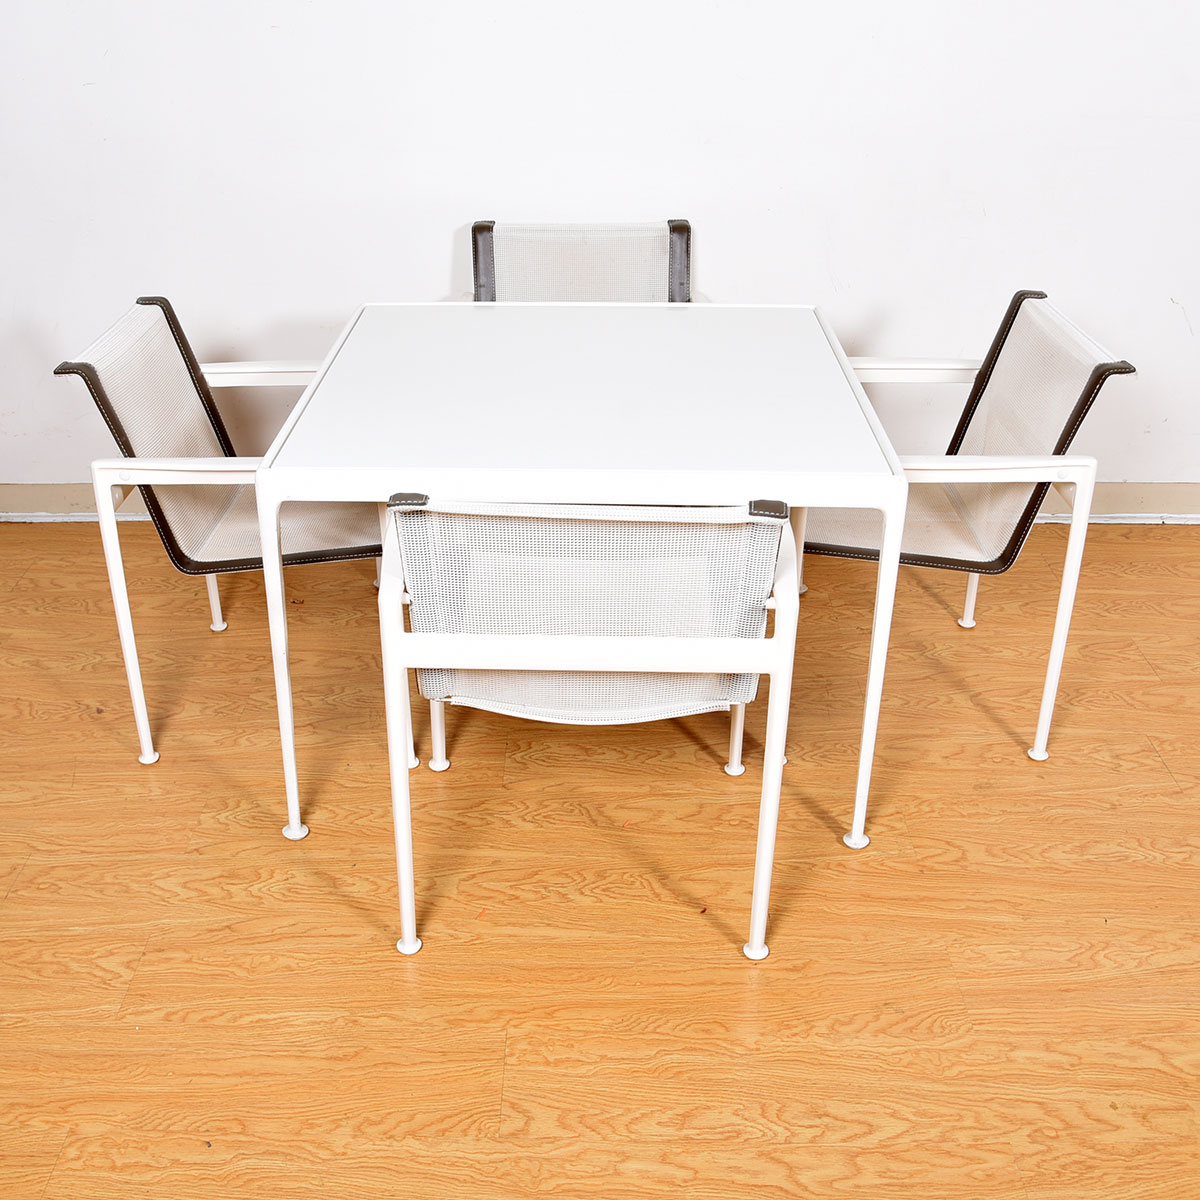 Richard Schultz Patio Table & Set of 4 Patio Chairs